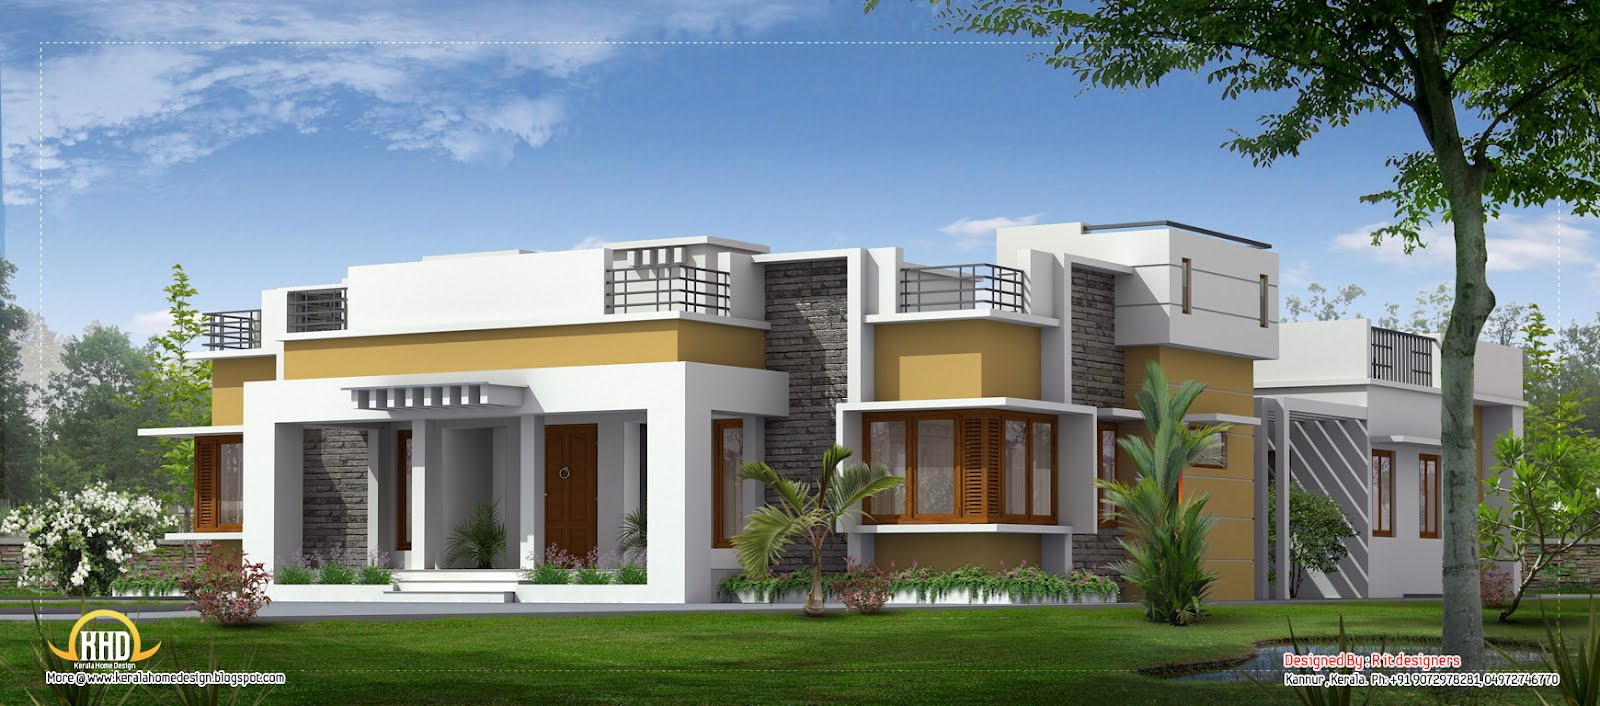 Single Floor Home 2910 Sq Ft Kerala Home Design And Floor Plans